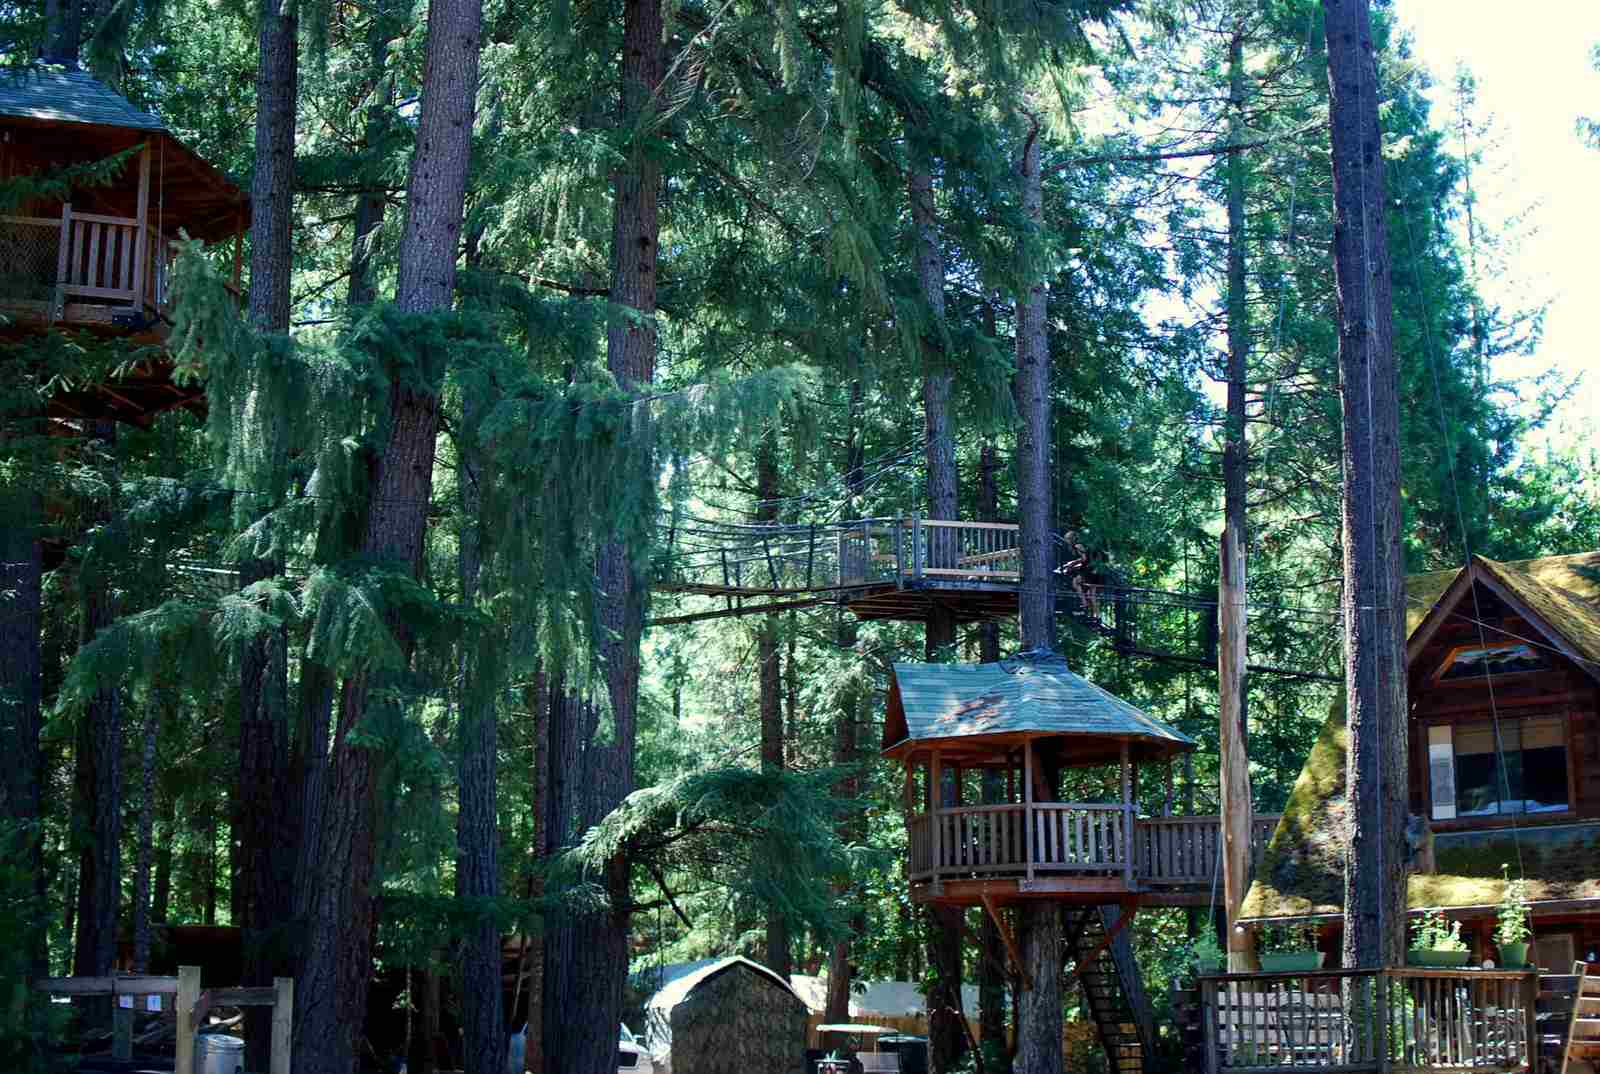 Deluxe treehouses fill a green Oregon forest at Out 'n' About Treesort